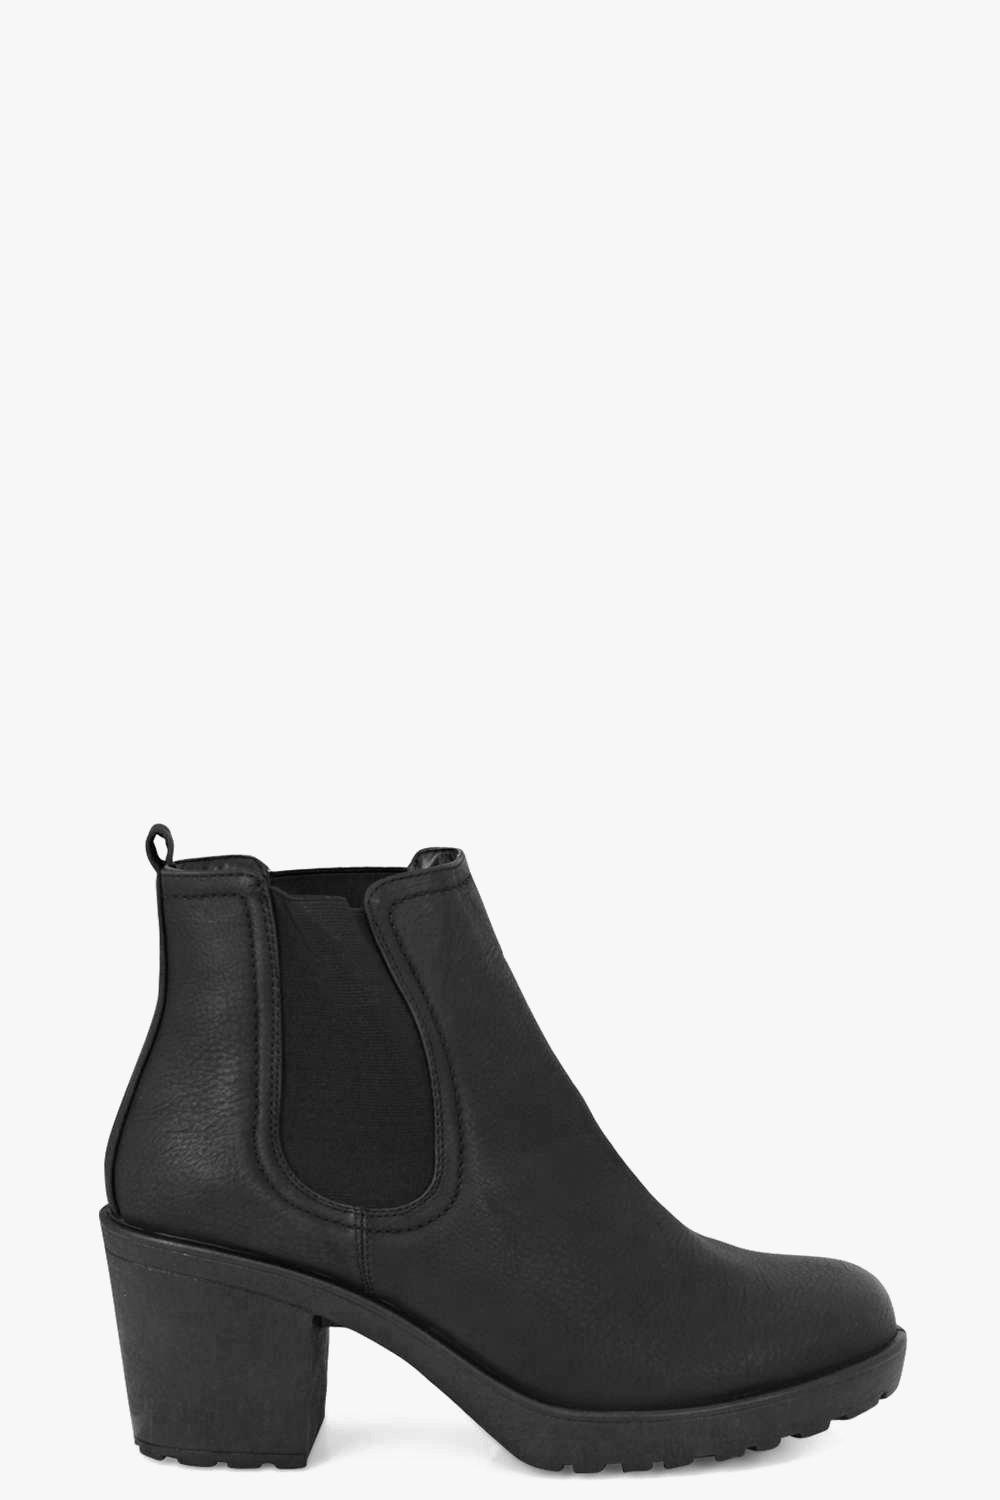 Lipsy block heel ankle boot in black. £ RAID Apple Black Studded Chelsea Boots. £ Dr Martens Sinclair Black Leather Zip Chunky Flatform Boots. ASOS DESIGN Wide Fit Reside heeled ankle chelsea boots. £ Office Andreas black leather with croc chelsea boot. £ Vagabond Kenova black leather chunky biker boots.